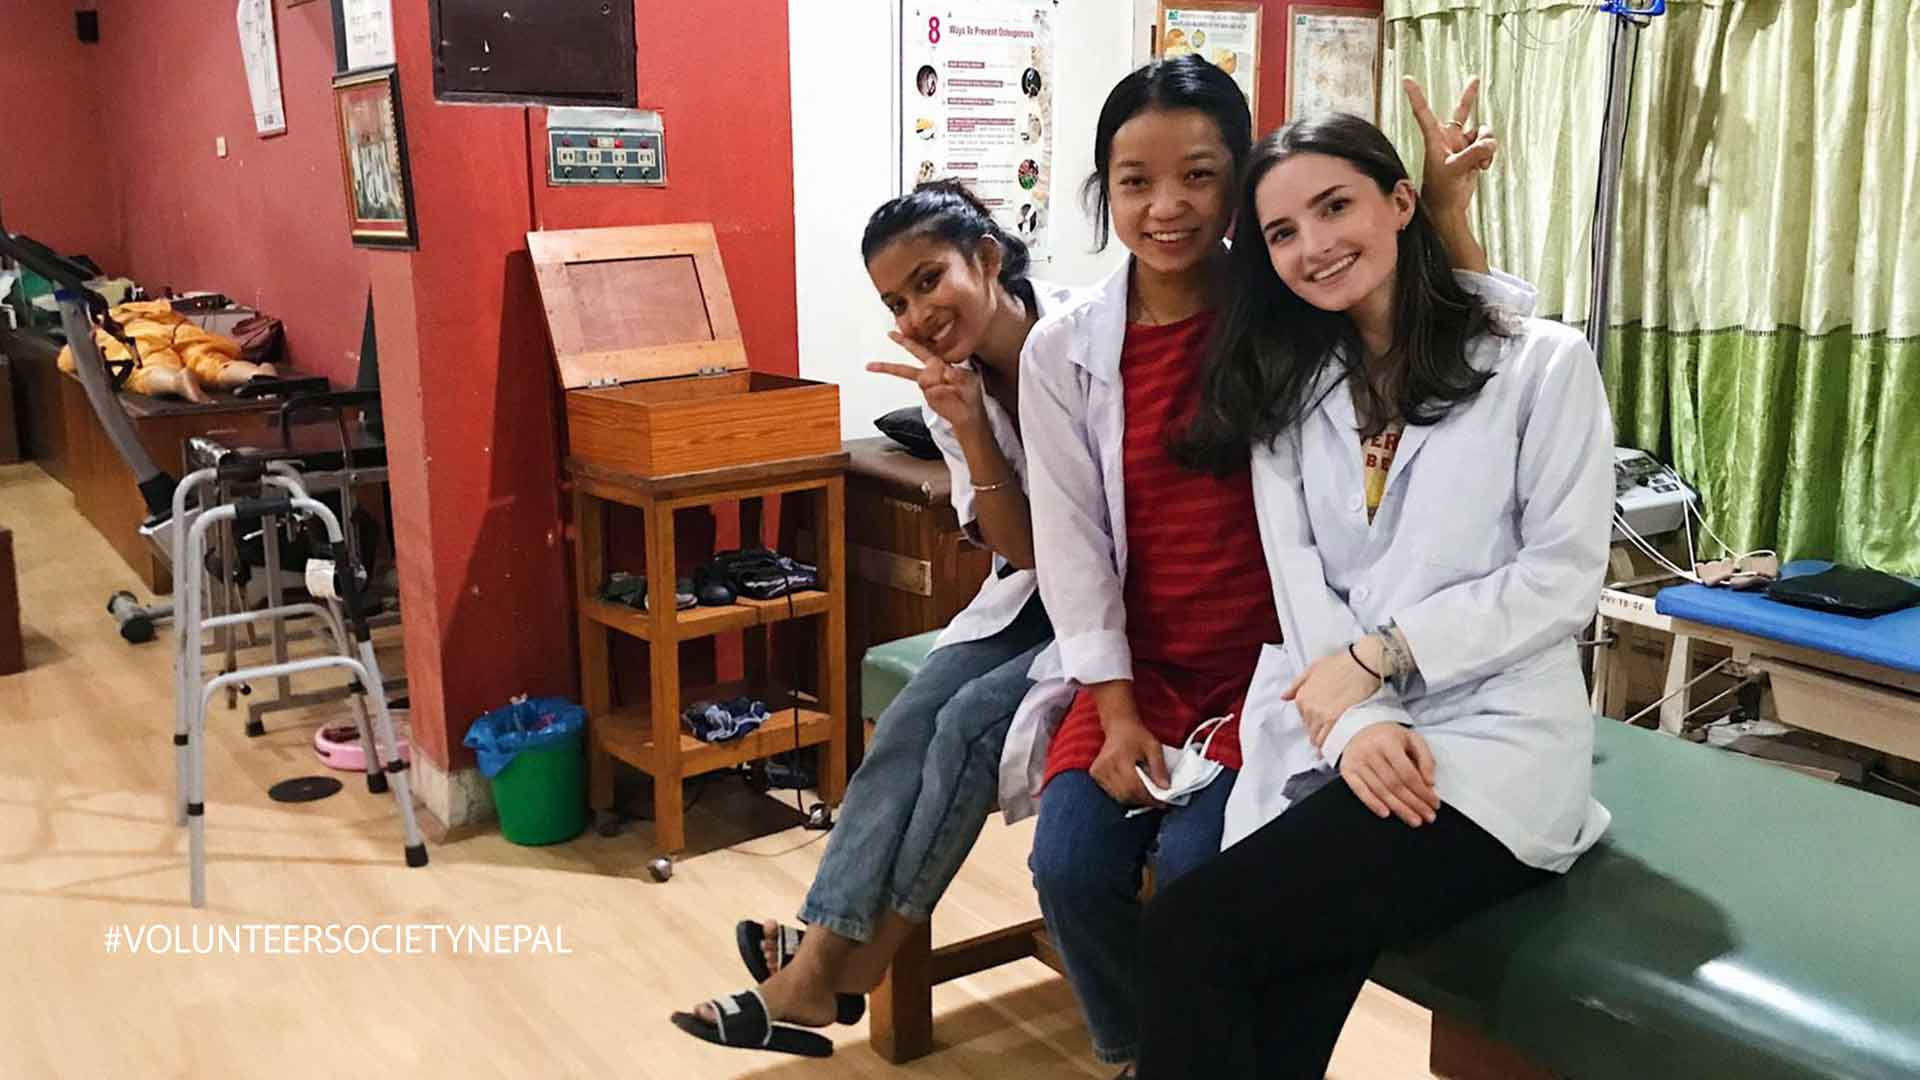 erica boland a physiotherapy intern from usa